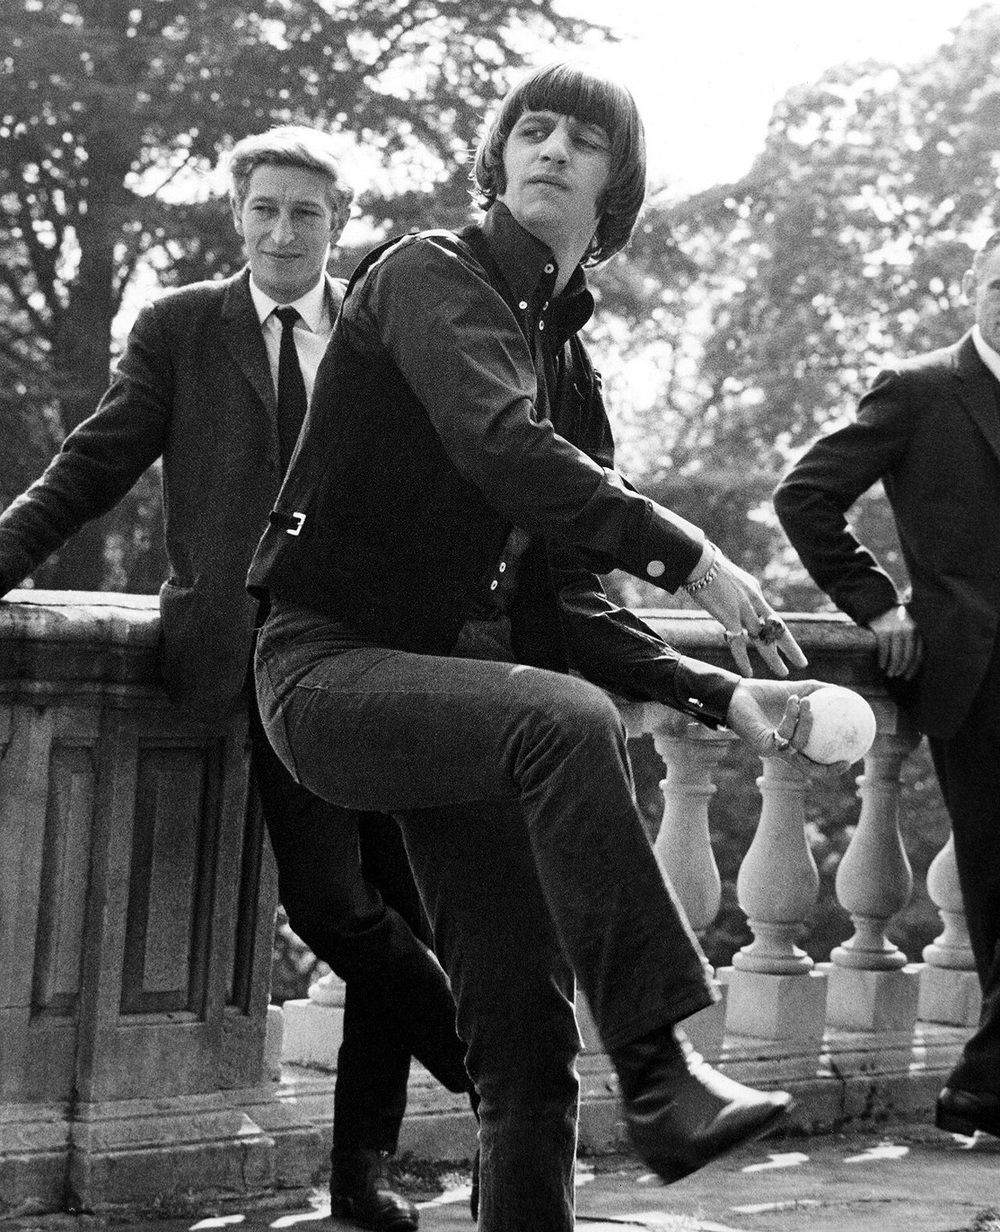 Ringo Starr at Cliveden House, May 11th 1965.